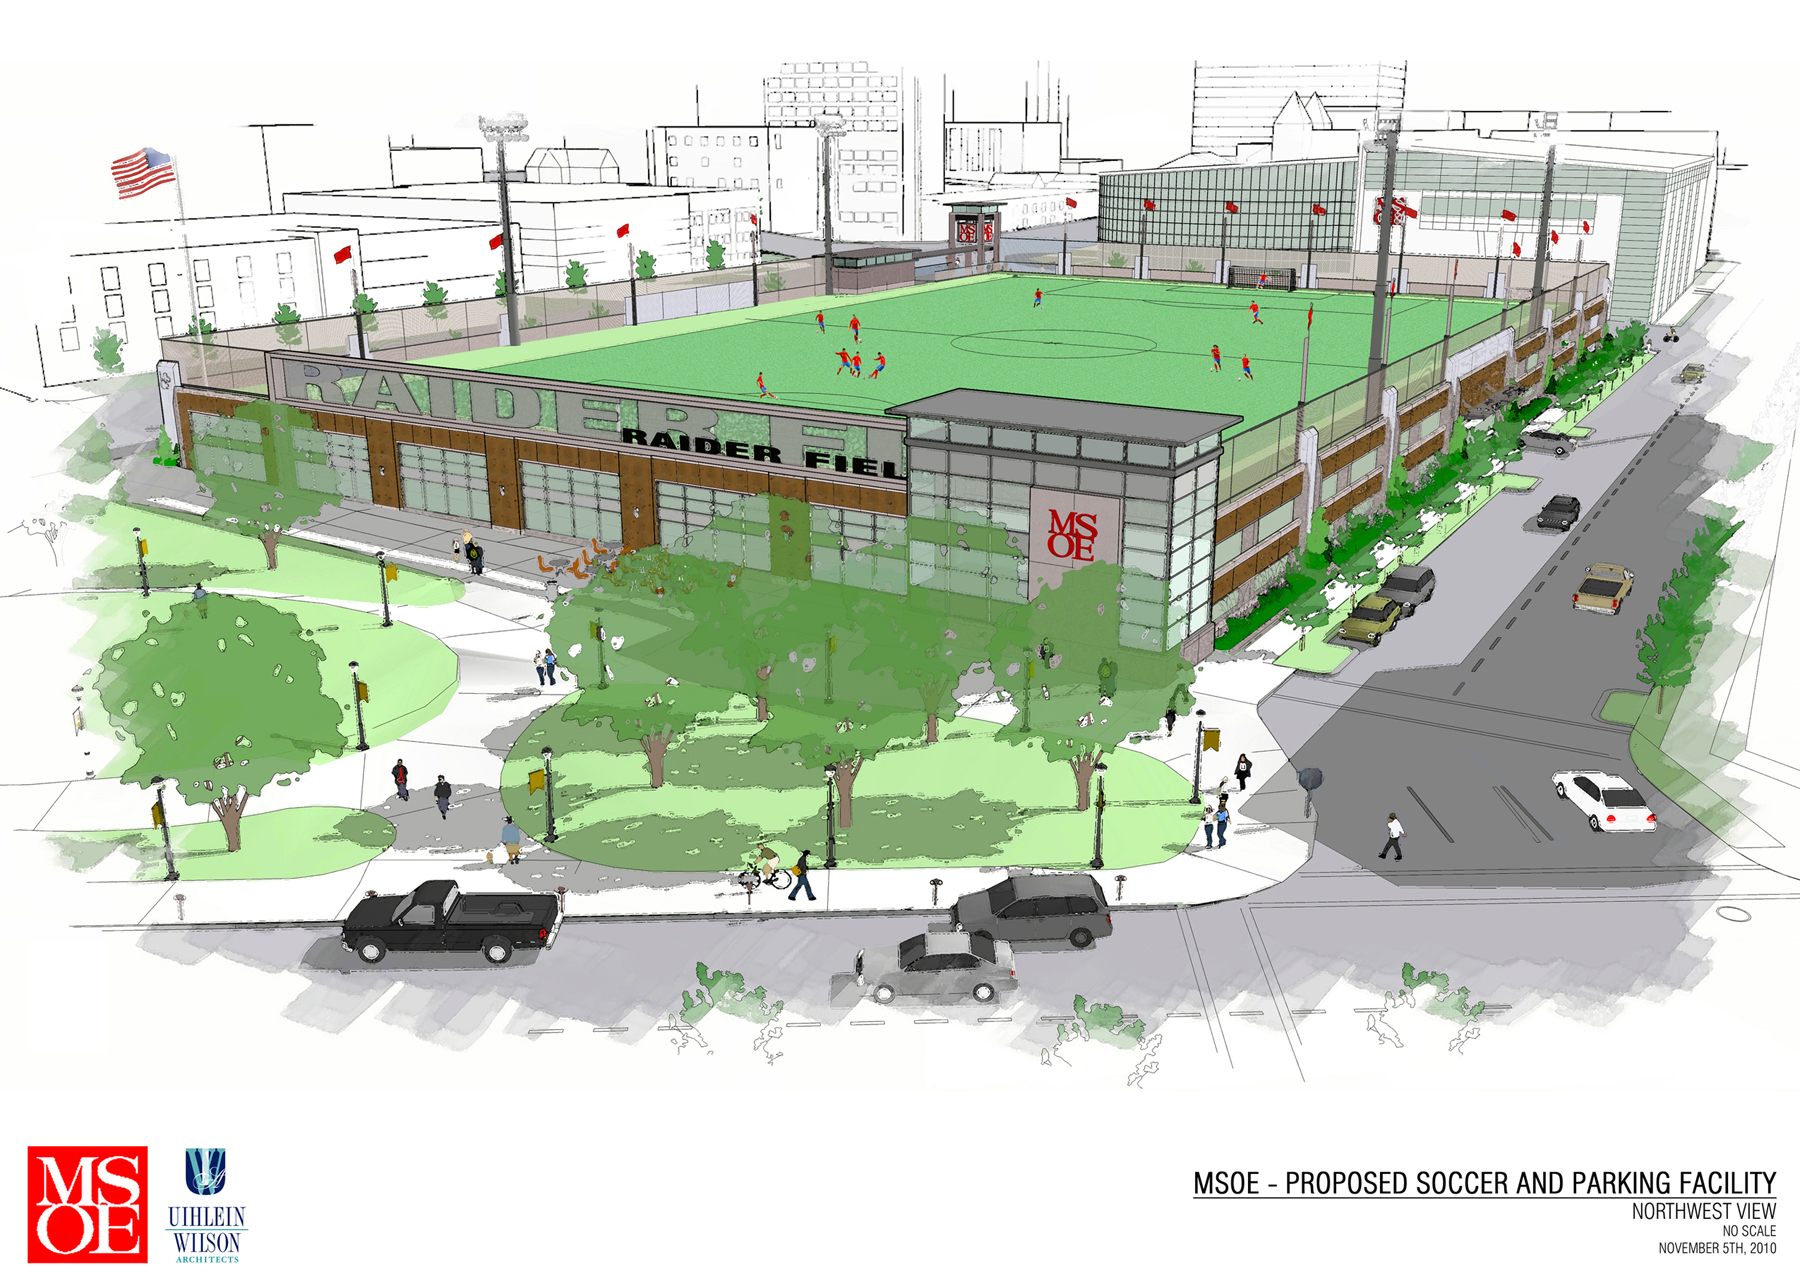 MSOE Proposes Parking Garage with Athletic Field in the Park East (Renderings)